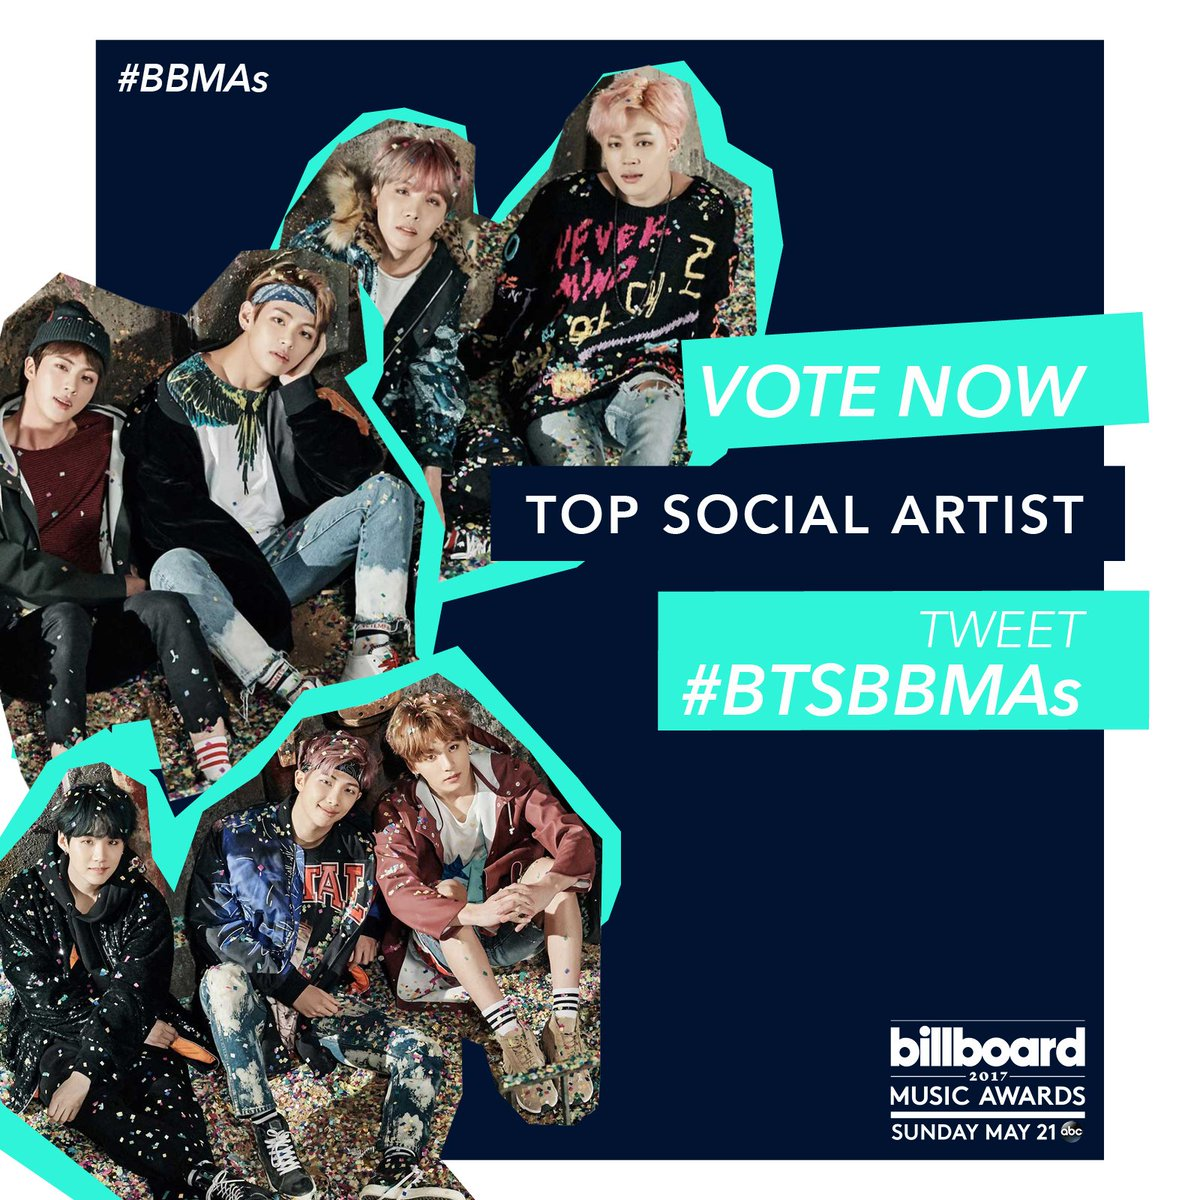 RT to vote for @BTS_twt for Top Social Artist at the #BBMAs! #BTSBBMAs https://t.co/Uo8zZOn7YB